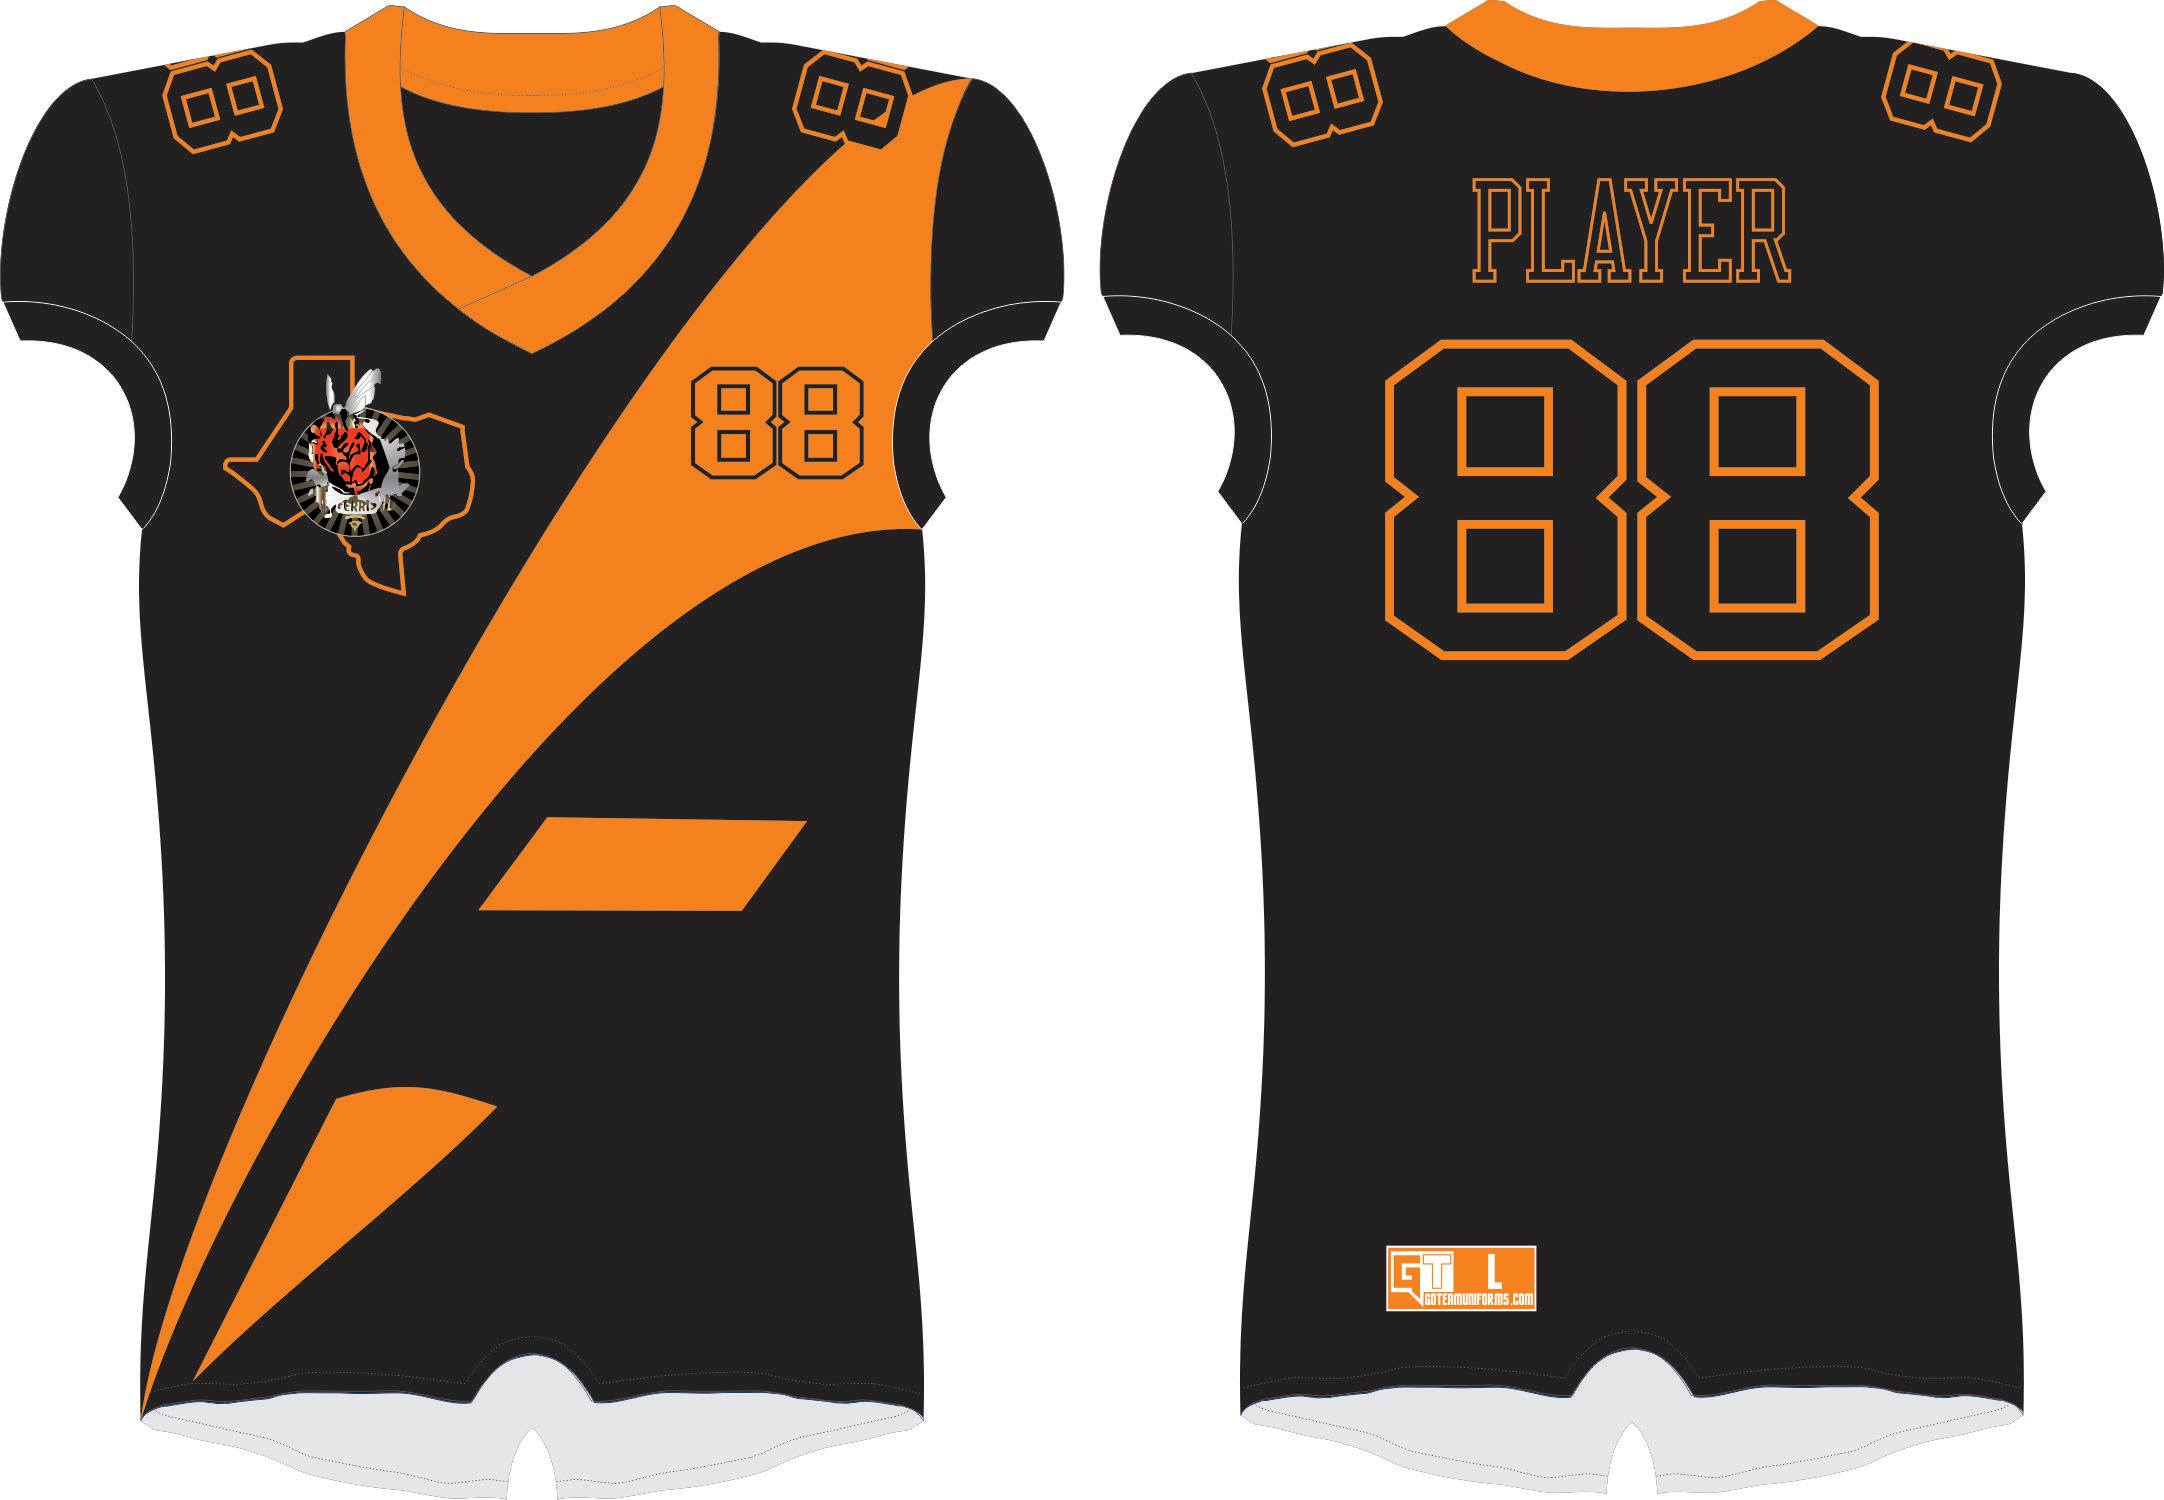 Ferris Yellow Jackets Orange and Black Tribal Tackle Jersey